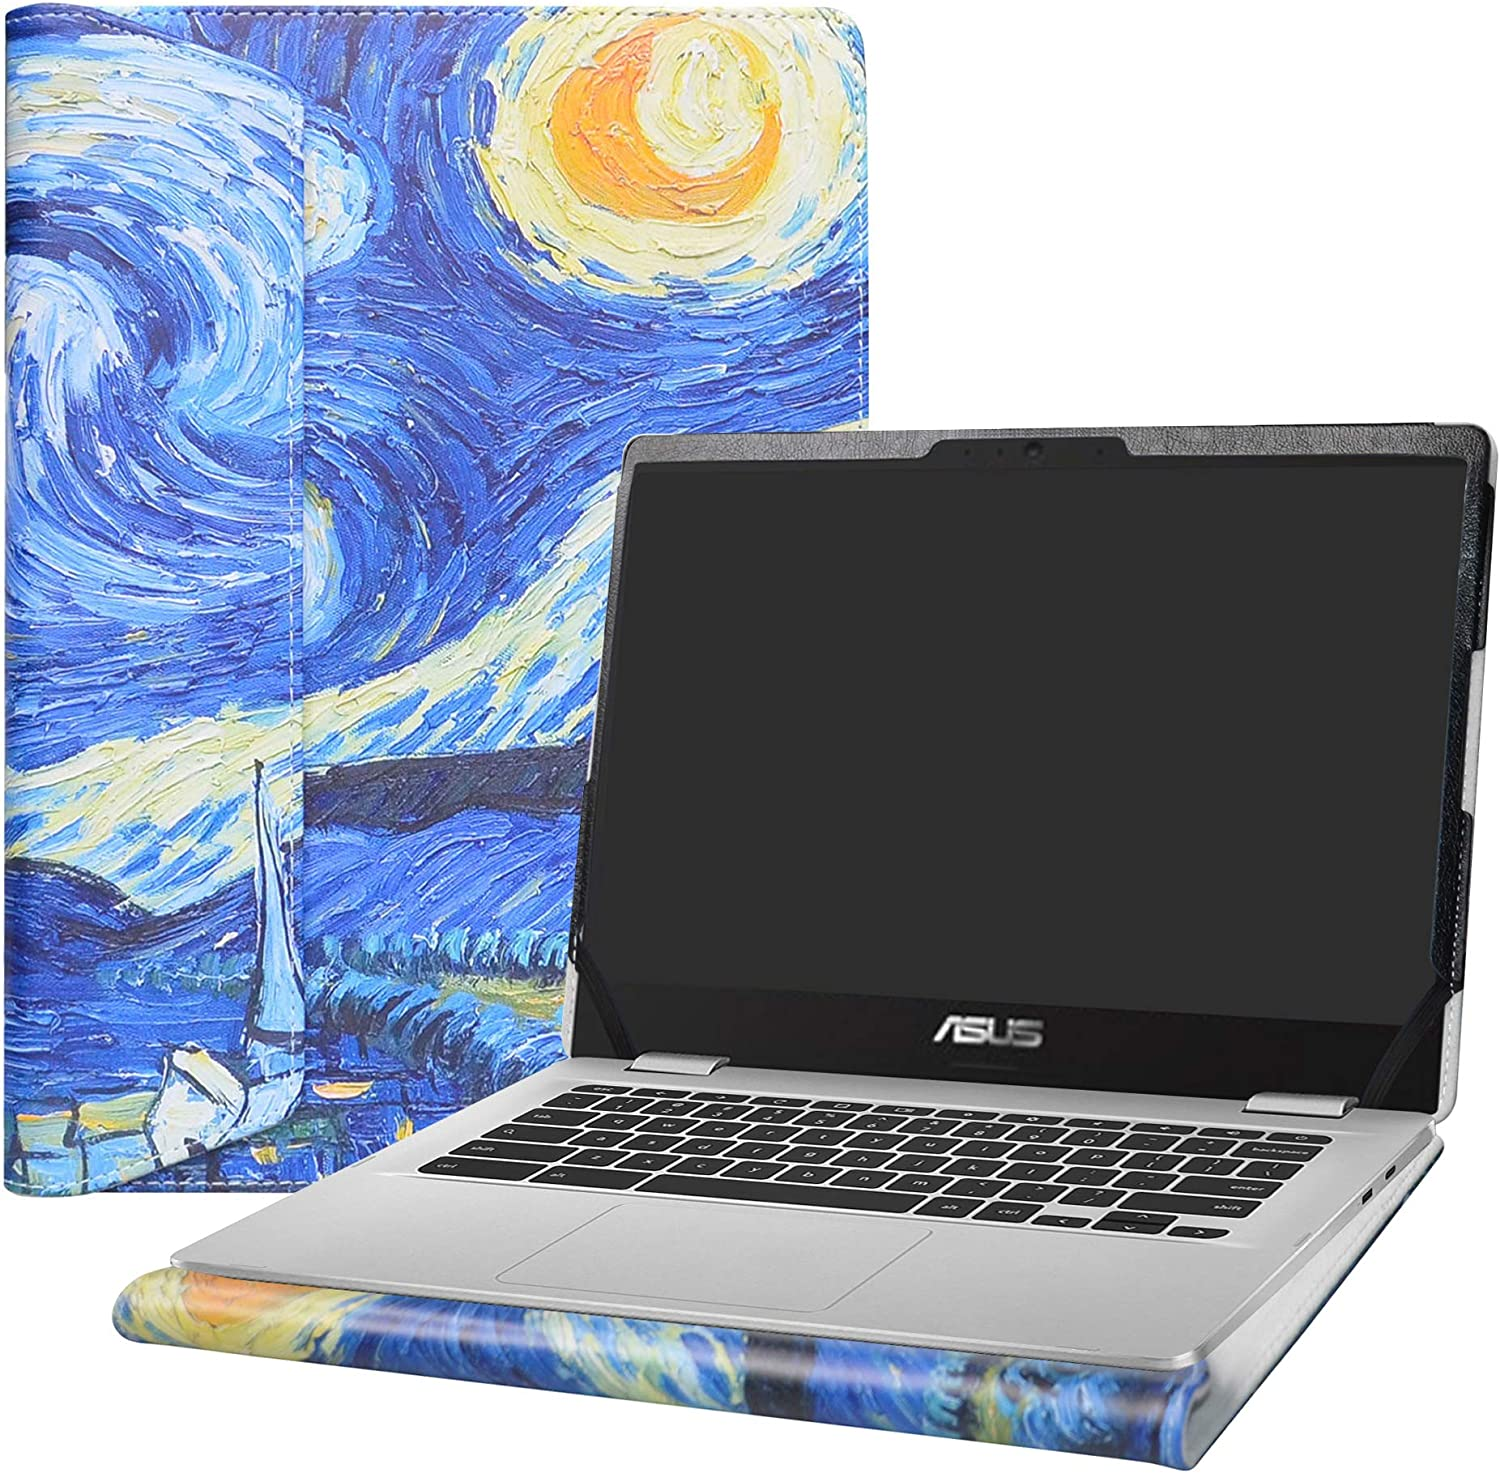 "Alapmk Protective Case Cover for 14"" ASUS Chromebook C423NA c423na-dh02 & ACER Swift 3 14 SF314-55 SF314-55g SF314-56 Laptop(Note:Not fit Swift 3 SF314-51 SF314-57 SF314-52 SF314-53),Starry Night"